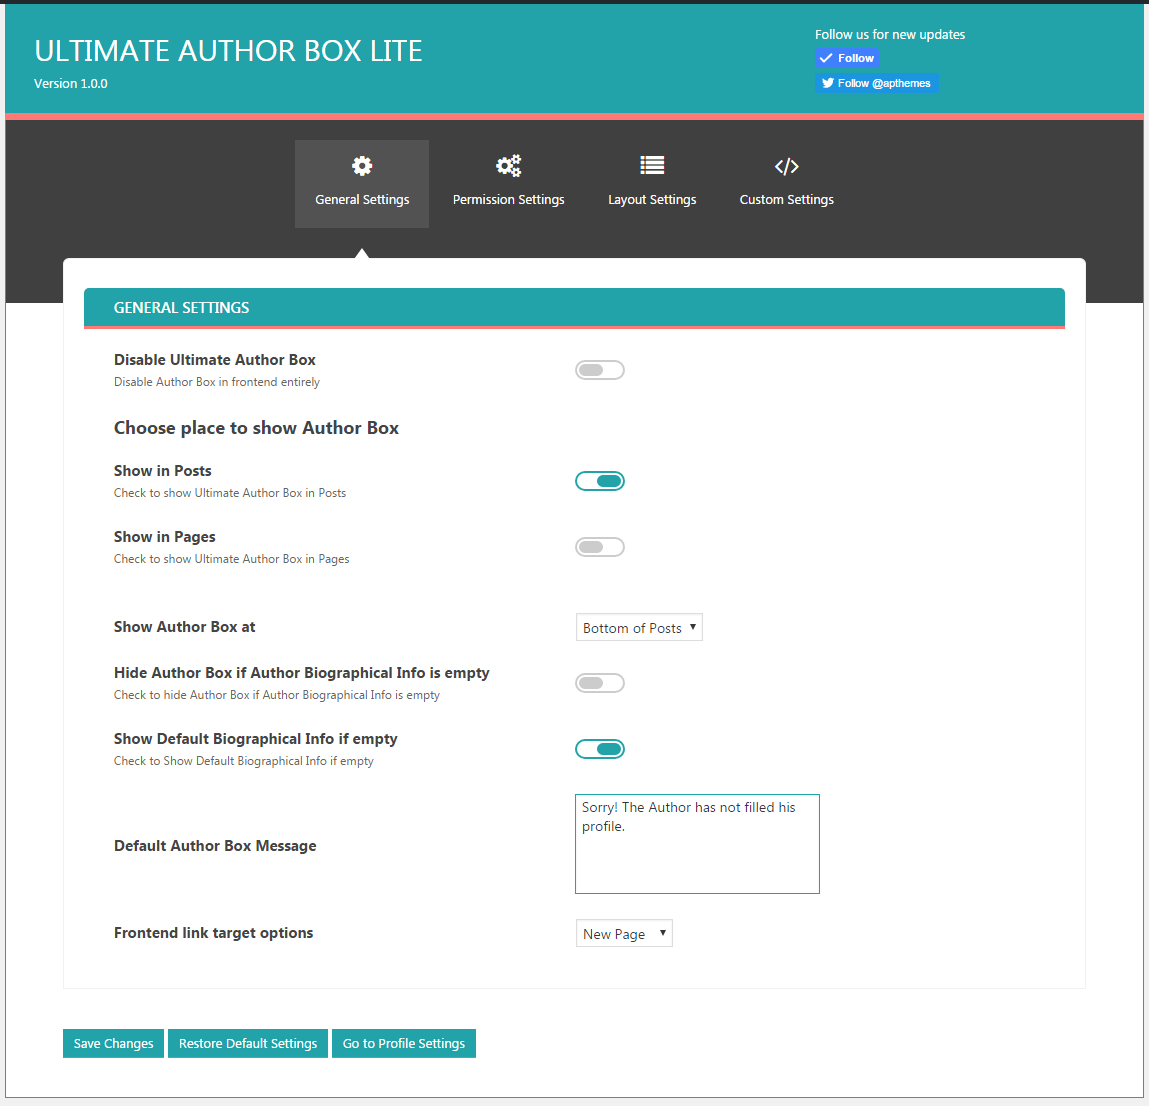 Ultimate Author Box Lite: General Settings Tabs